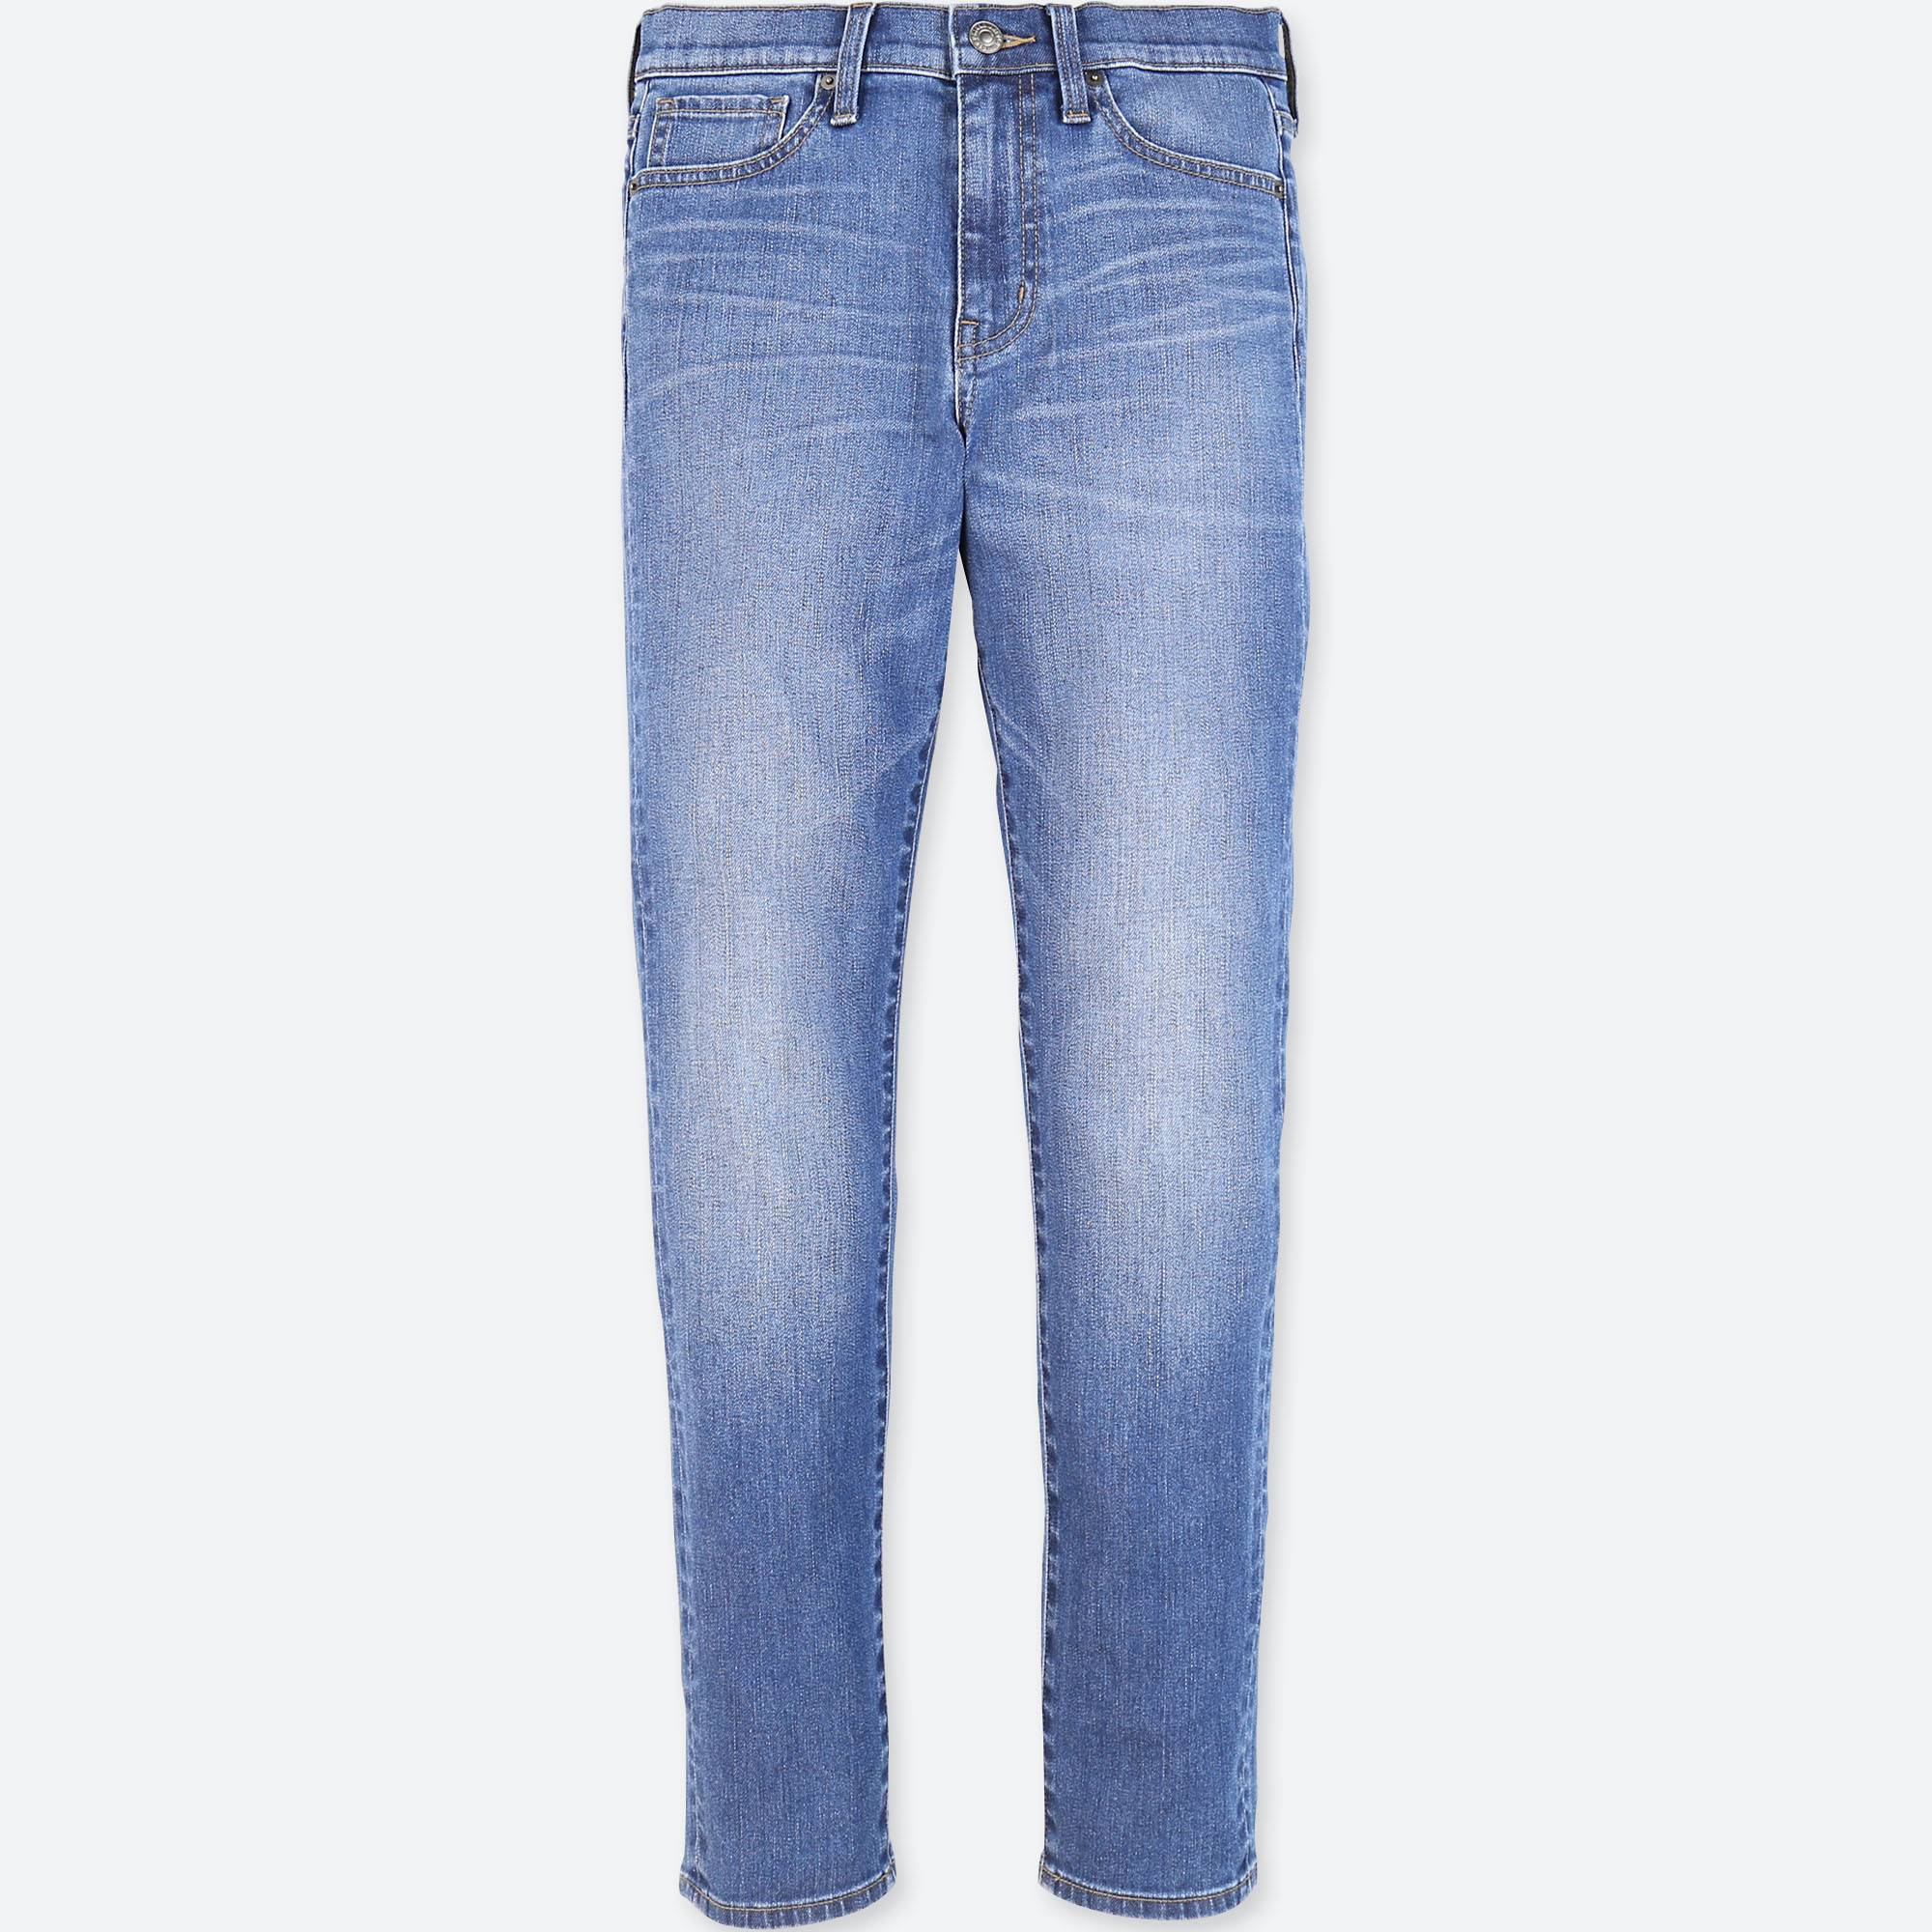 Shop women's jeans & denim at Madewell. See our entire selection of skinny, high waisted, mom jeans & all other styles. Free shipping & returns on all jeans. Free Shipping and free returns for Madewell Insiders. Madewell.